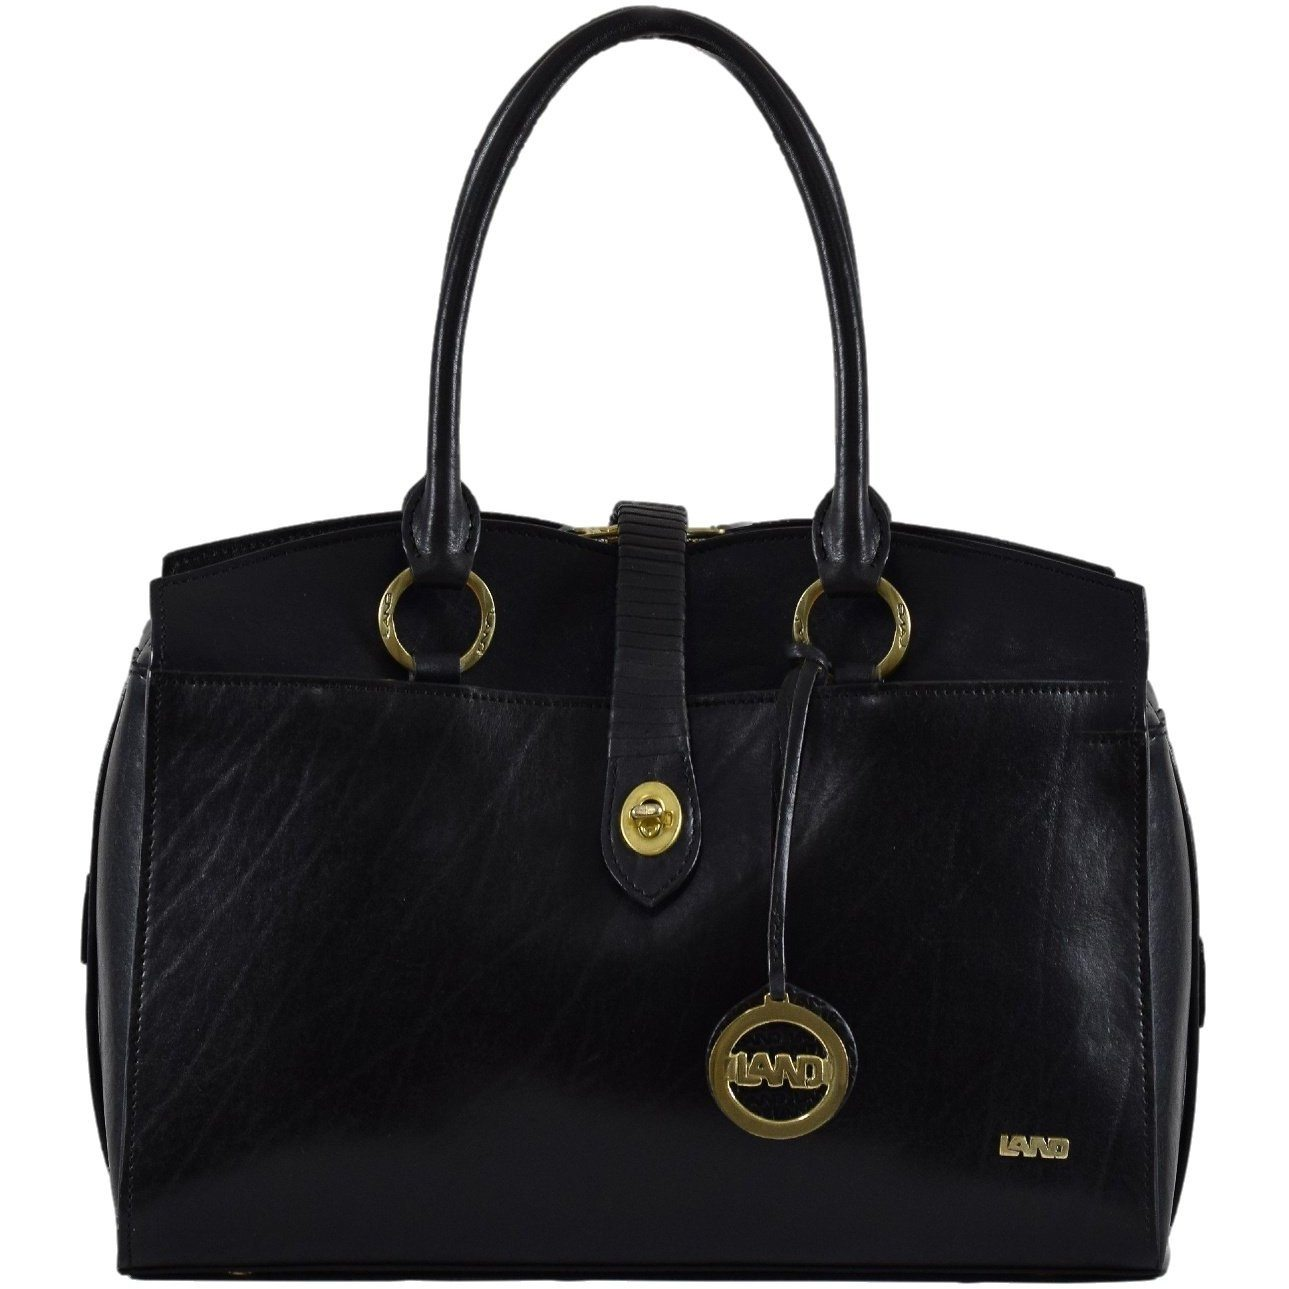 Limited Sanne Satchel, Handbag | LAND Leather